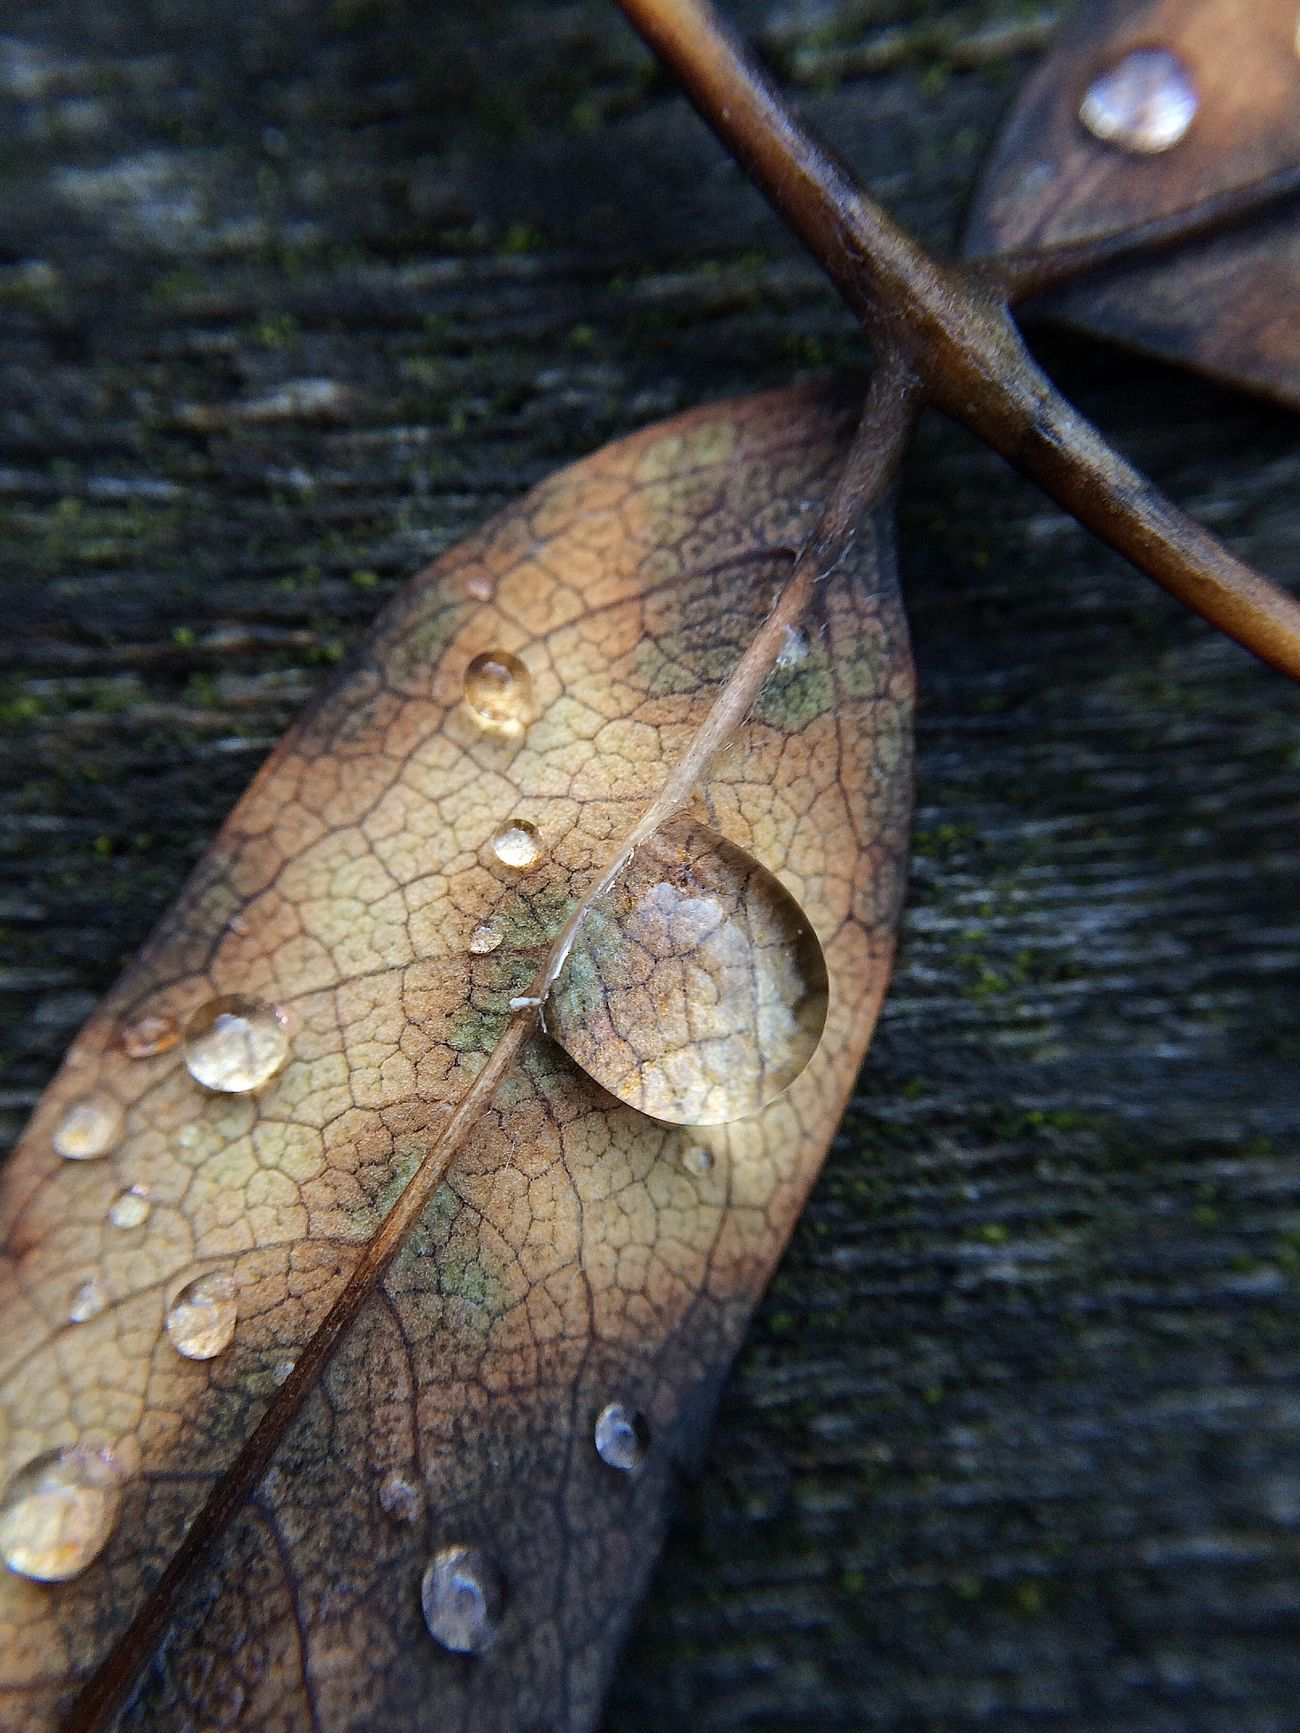 Maximum Closeness Leaves Autumn 2016 Close-up Fallen Nature's Diversities Drops Autumn Collection Pure And Untouched (raw Image)